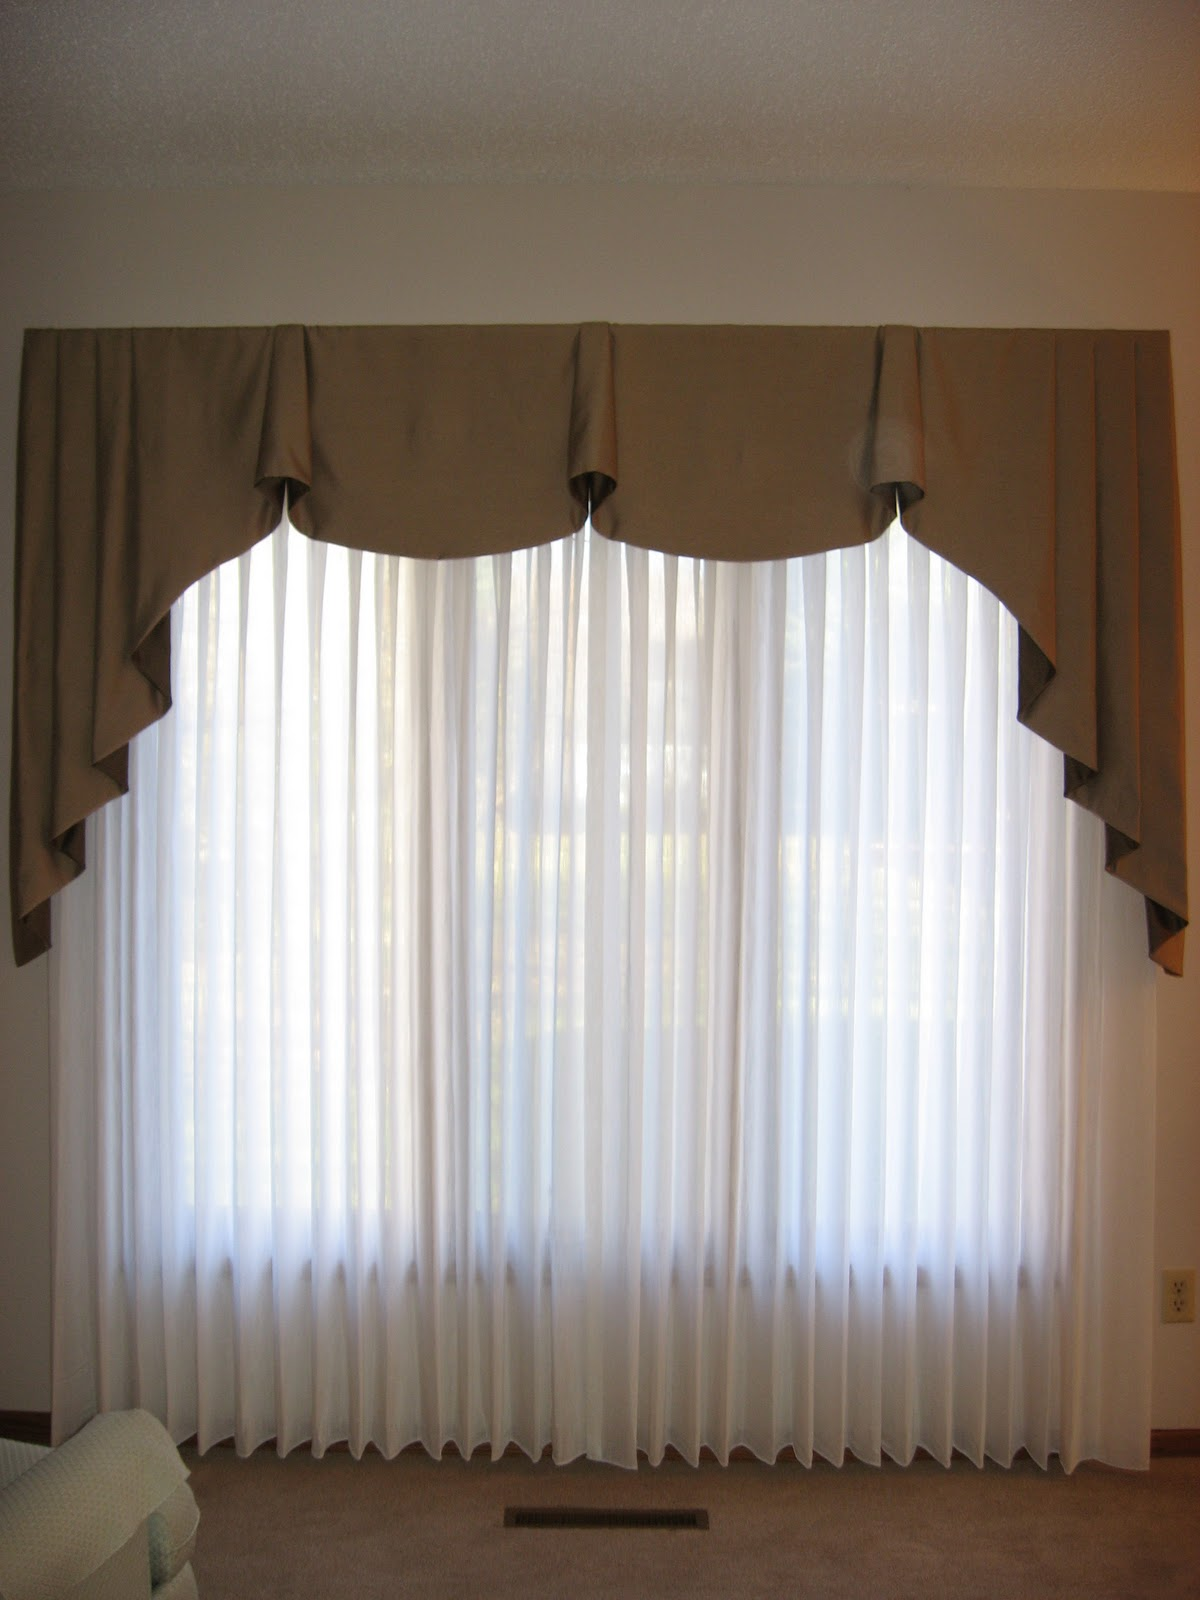 Pleated Sheer Curtains Window Treatments Macy's Curtains Window Treat